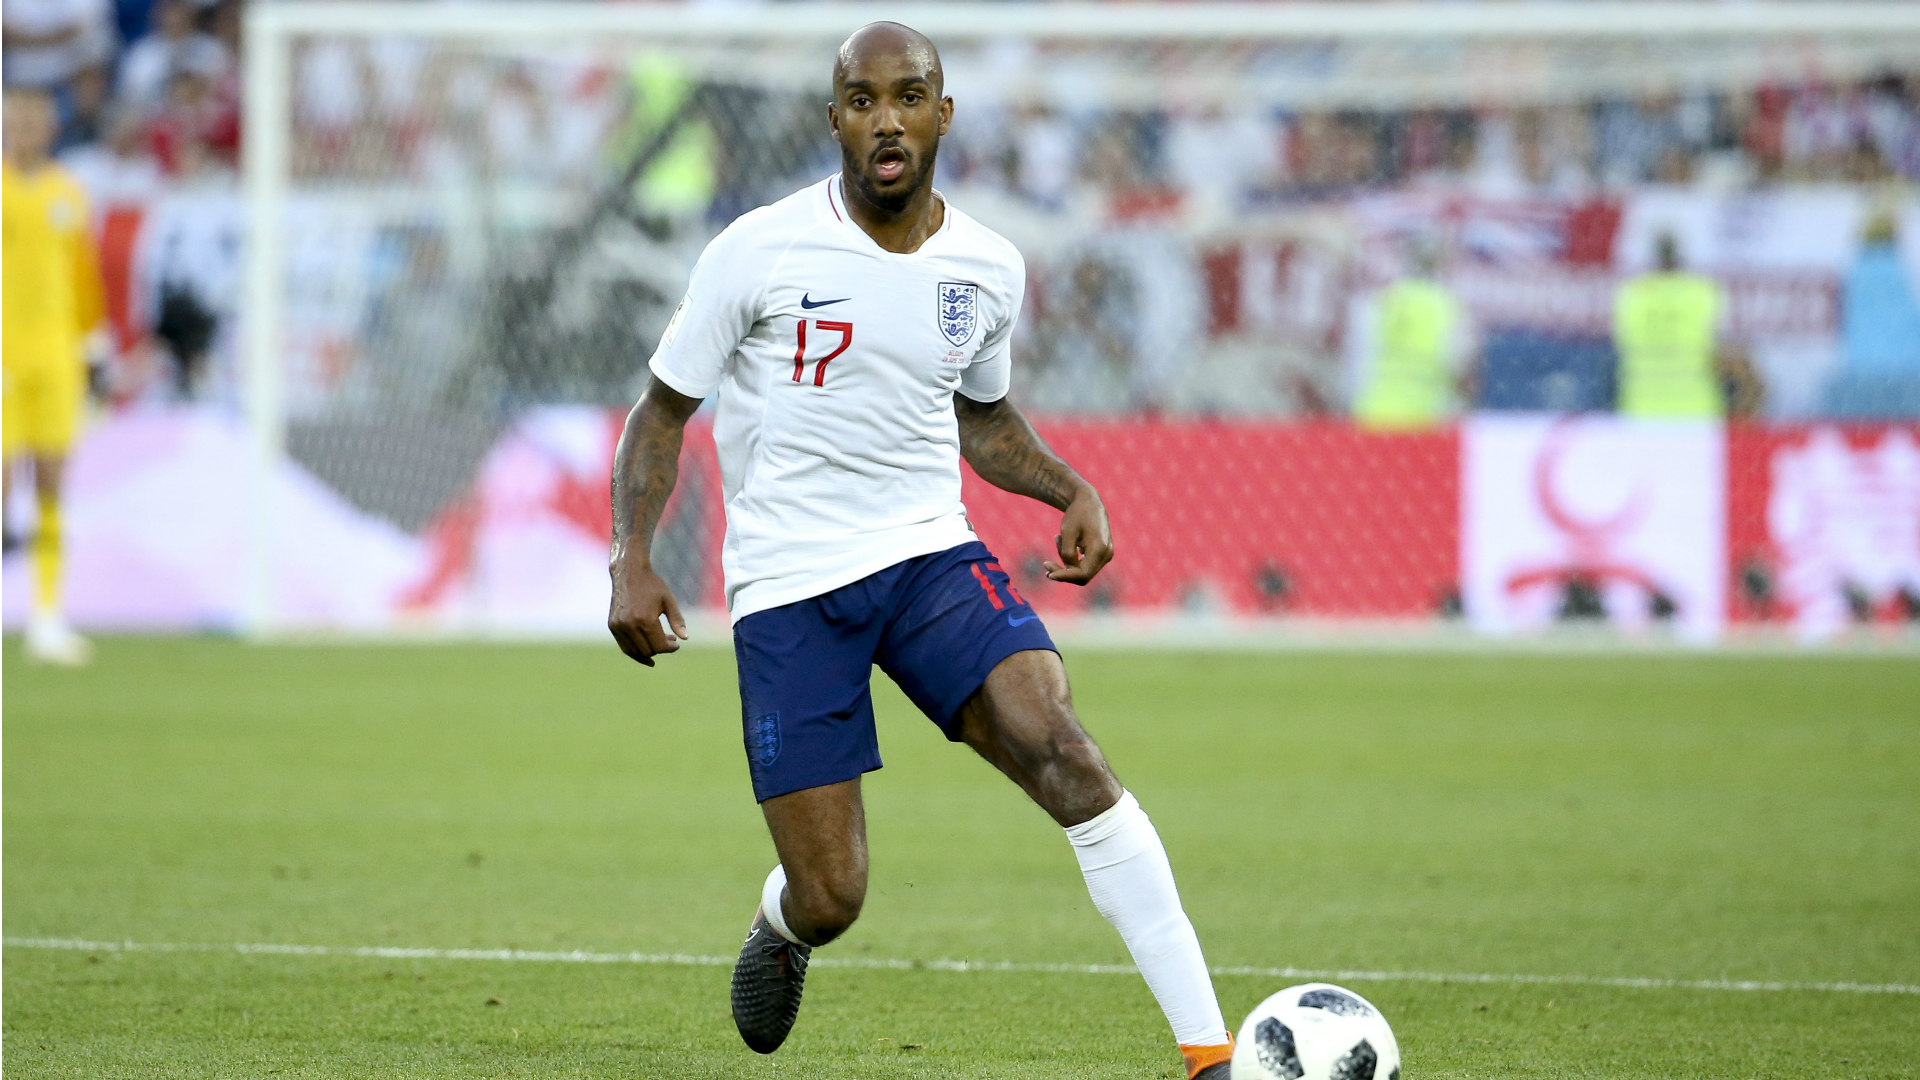 Delph to rejoin England squad after birth of daughter